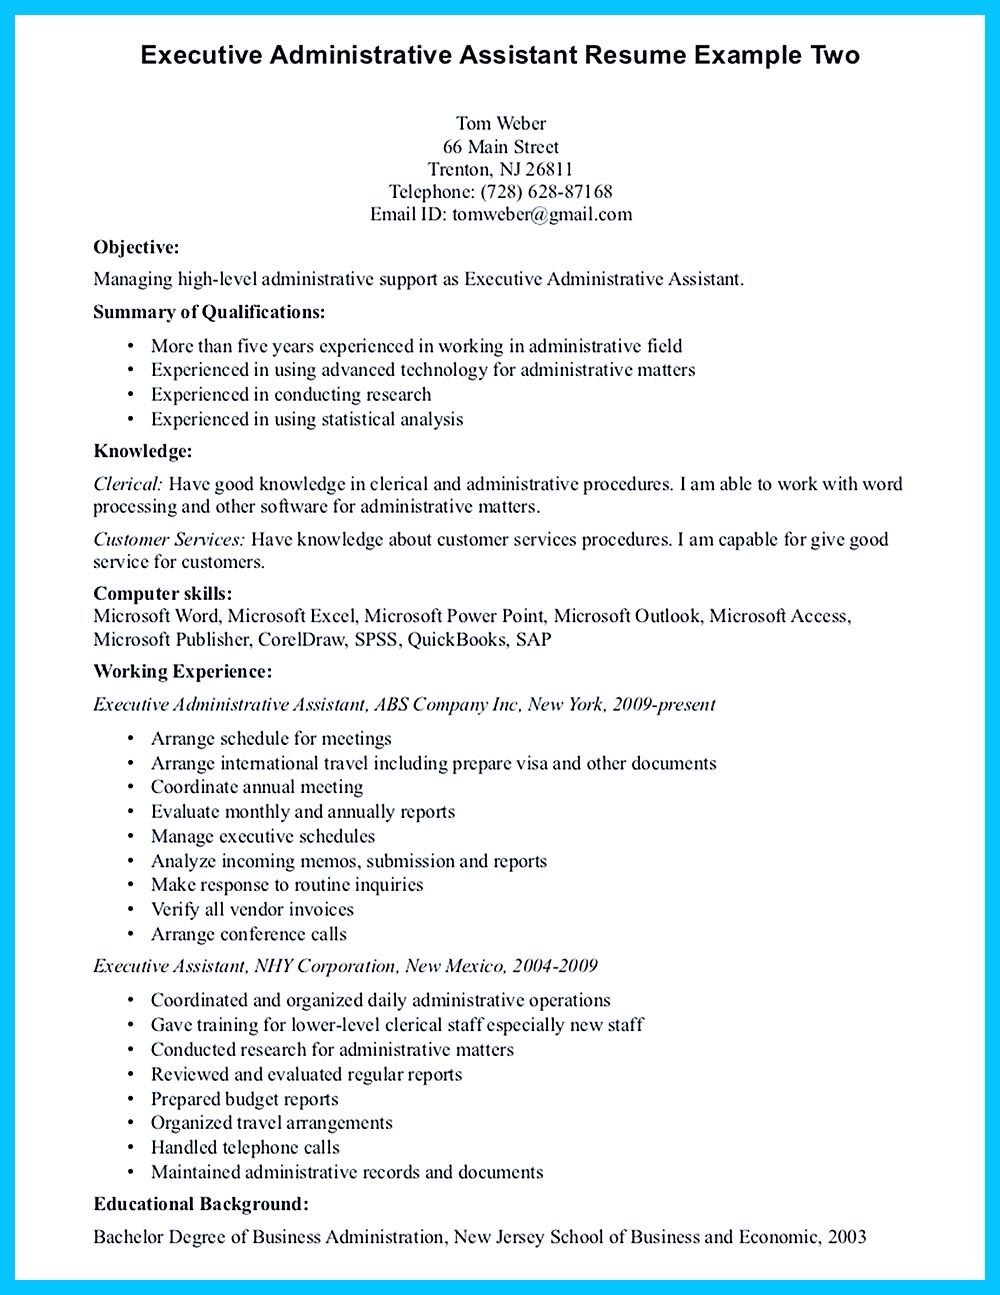 Office Manager Resume Objective In Writing Entry Level Administrative Assistant Resume You Need